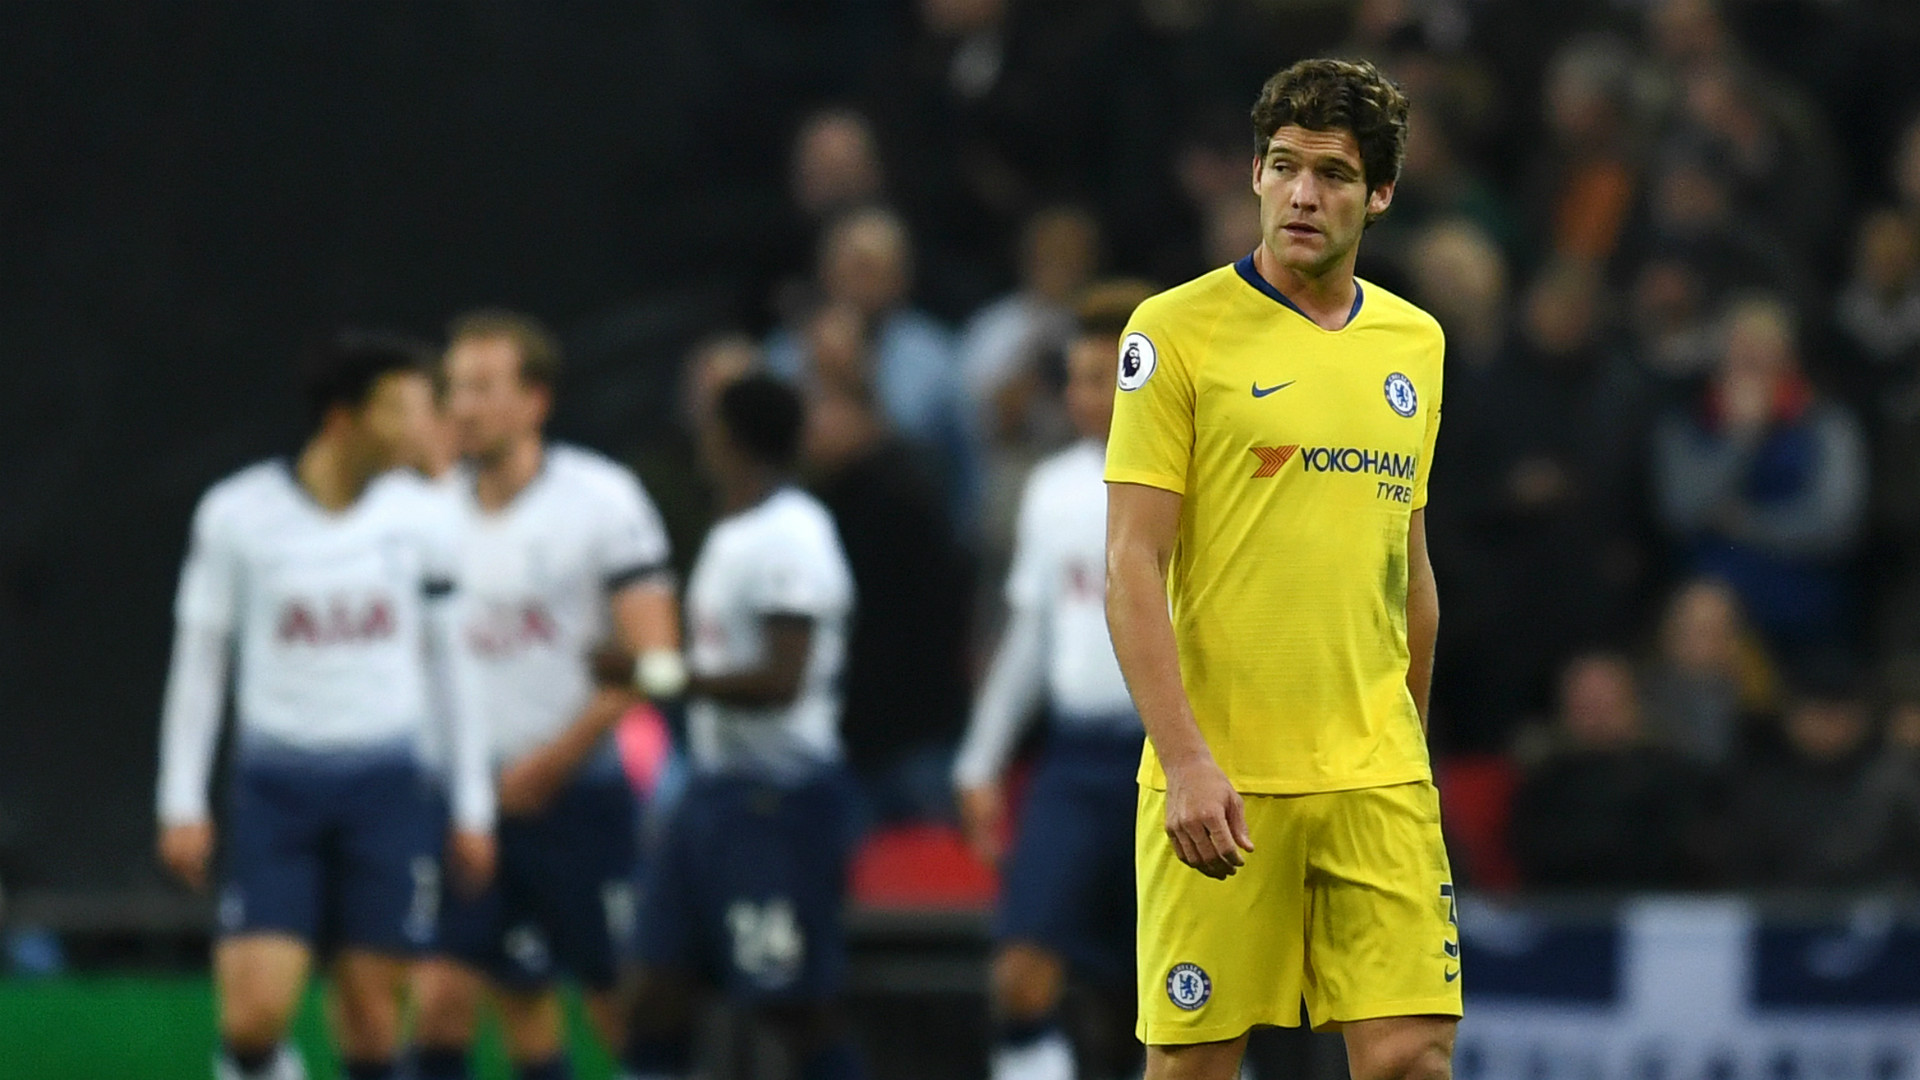 sarri was right all along shambolic spurs defeat shows chelsea aren